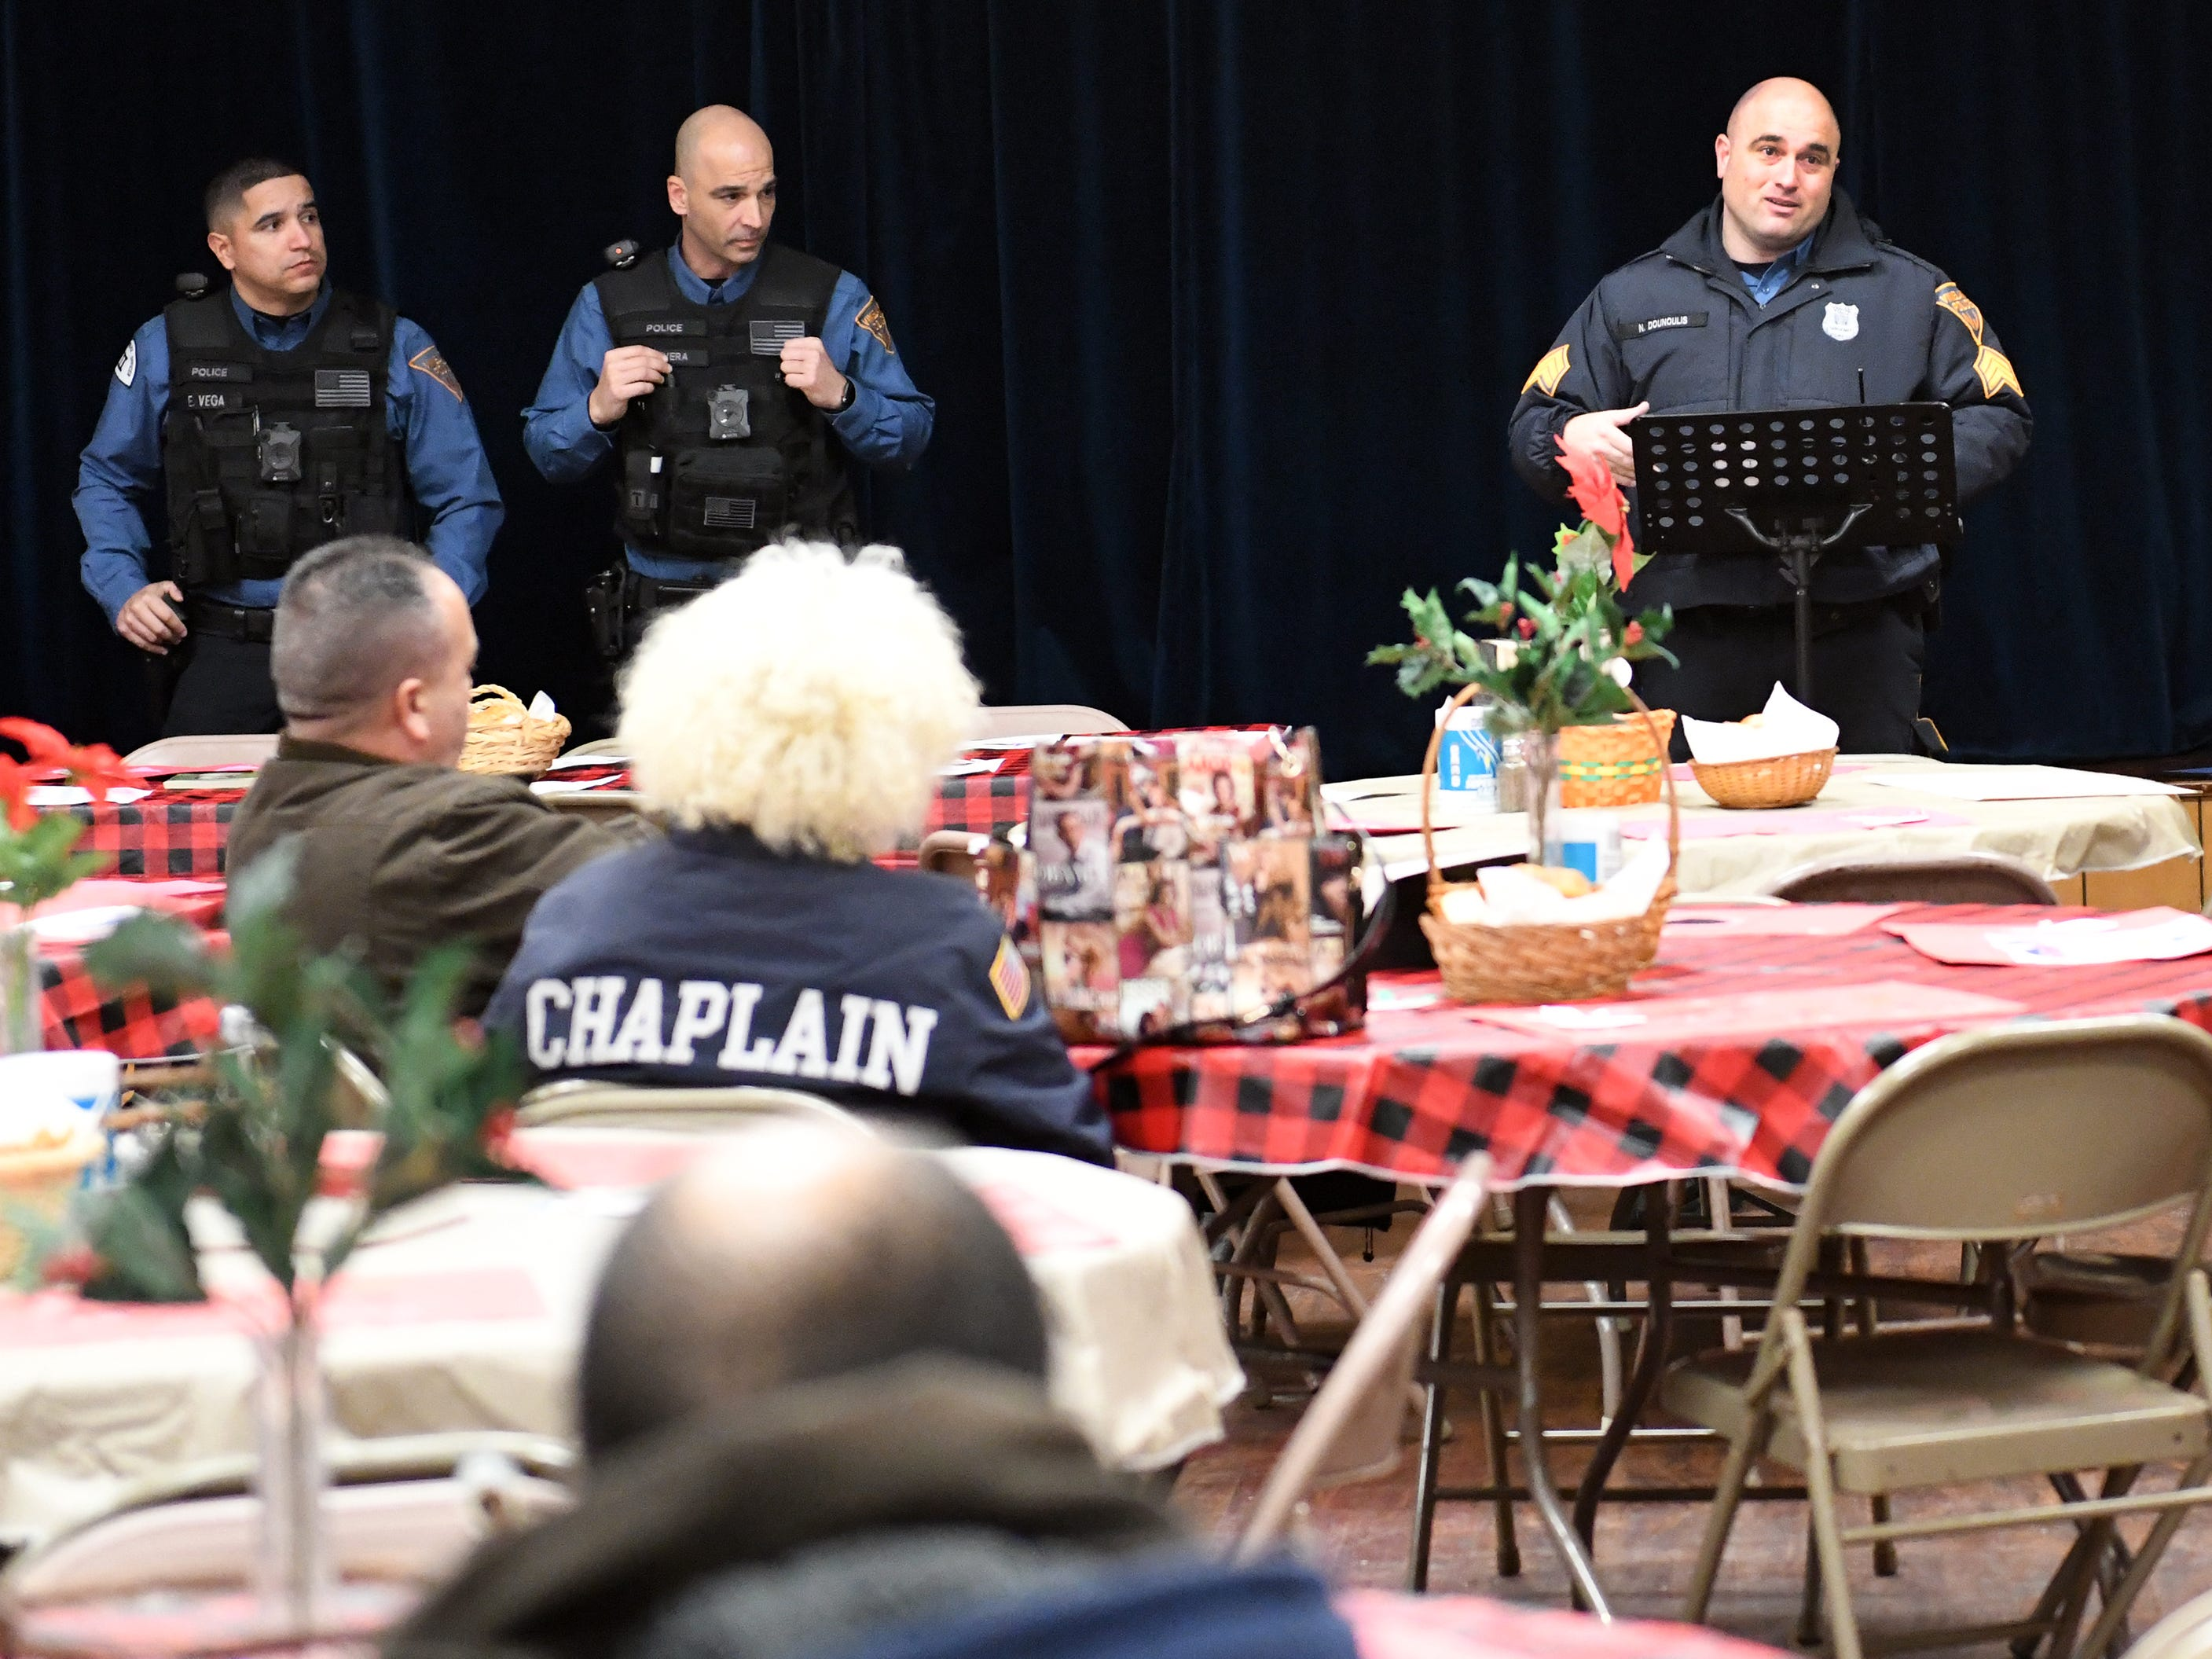 Vineland Police Sgt. Nick Dounoulis speaks about pedestrian safety following a memorial service for Jeffrey Cuss, who was fatally struck by a car along Landis Avenue. The service was held at the Spirit & Truth Ministries Soup Kitchen in Vineland on Thursday, Feb. 14, 2019.